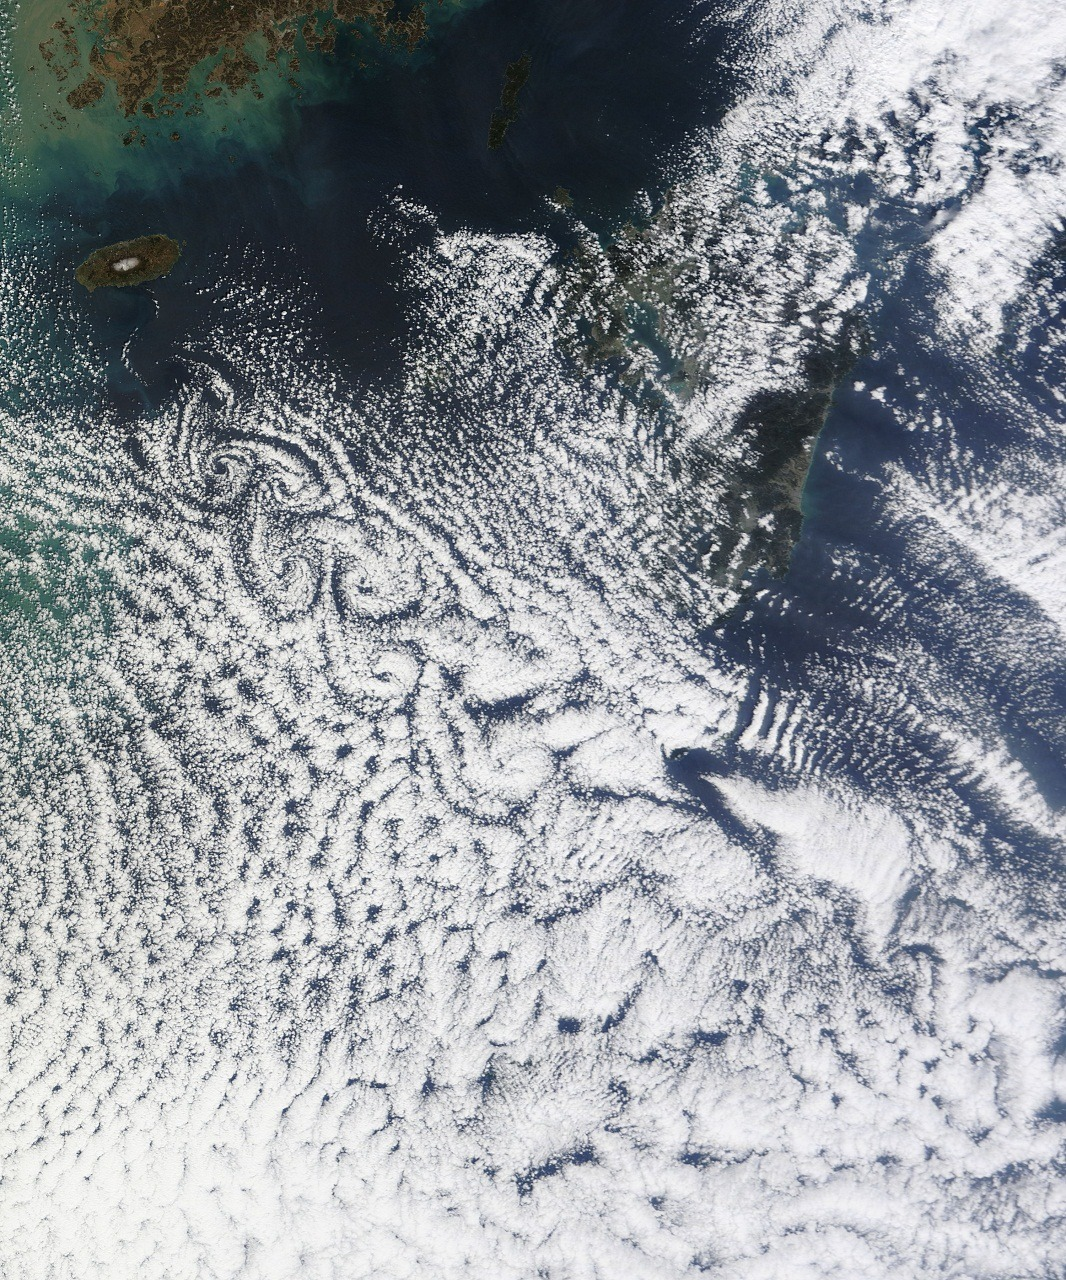 Cheju Do Cloud vortices off Cheju Do, South Korea. Image captured by NASA's Terra satellite in March 3, 2011 at 02:35 UTC.